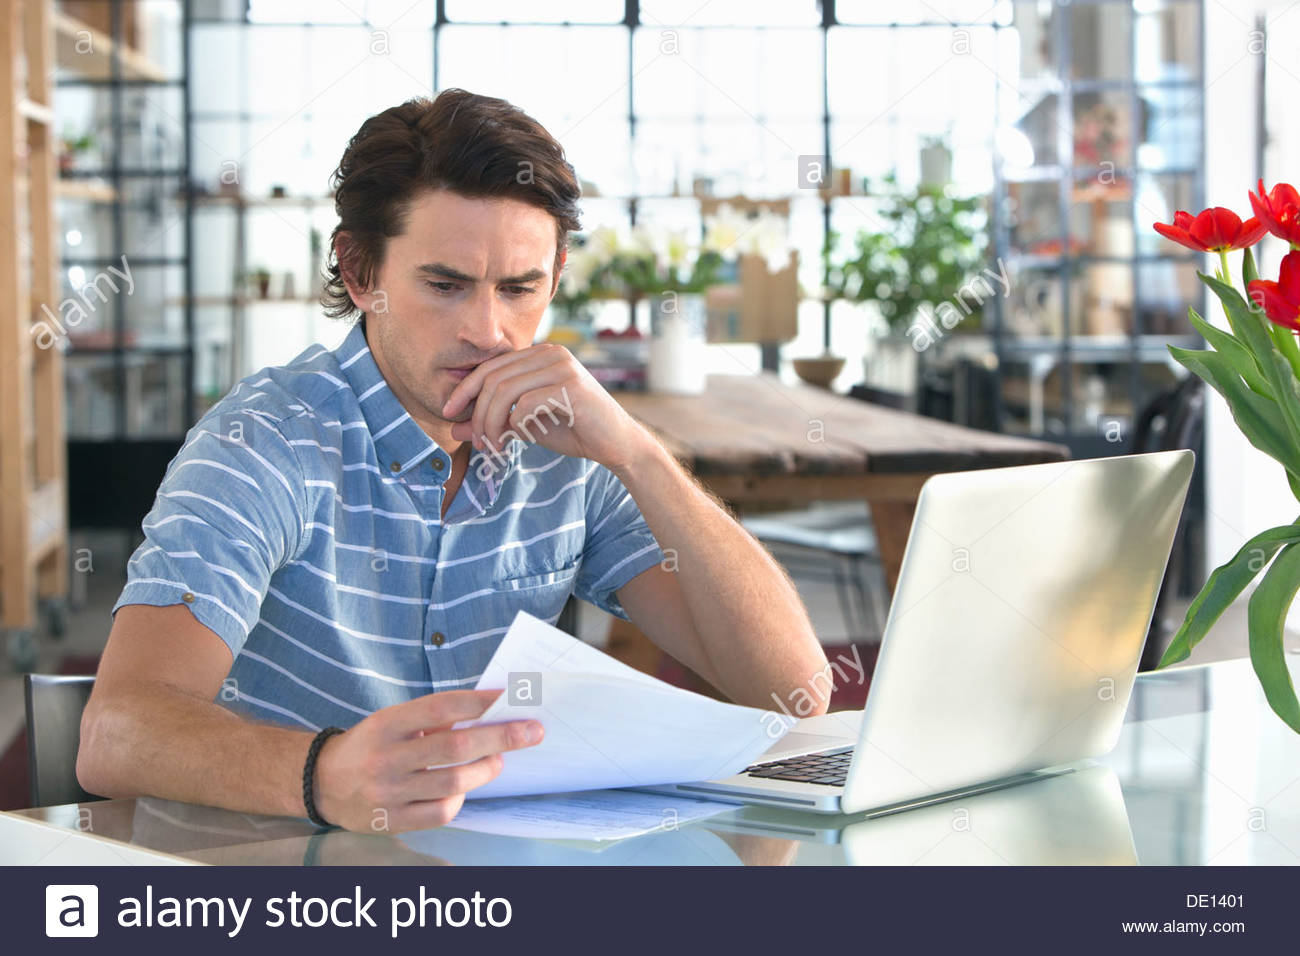 Serious man with laptop looking down at paperwork at kitchen table Photo Stock